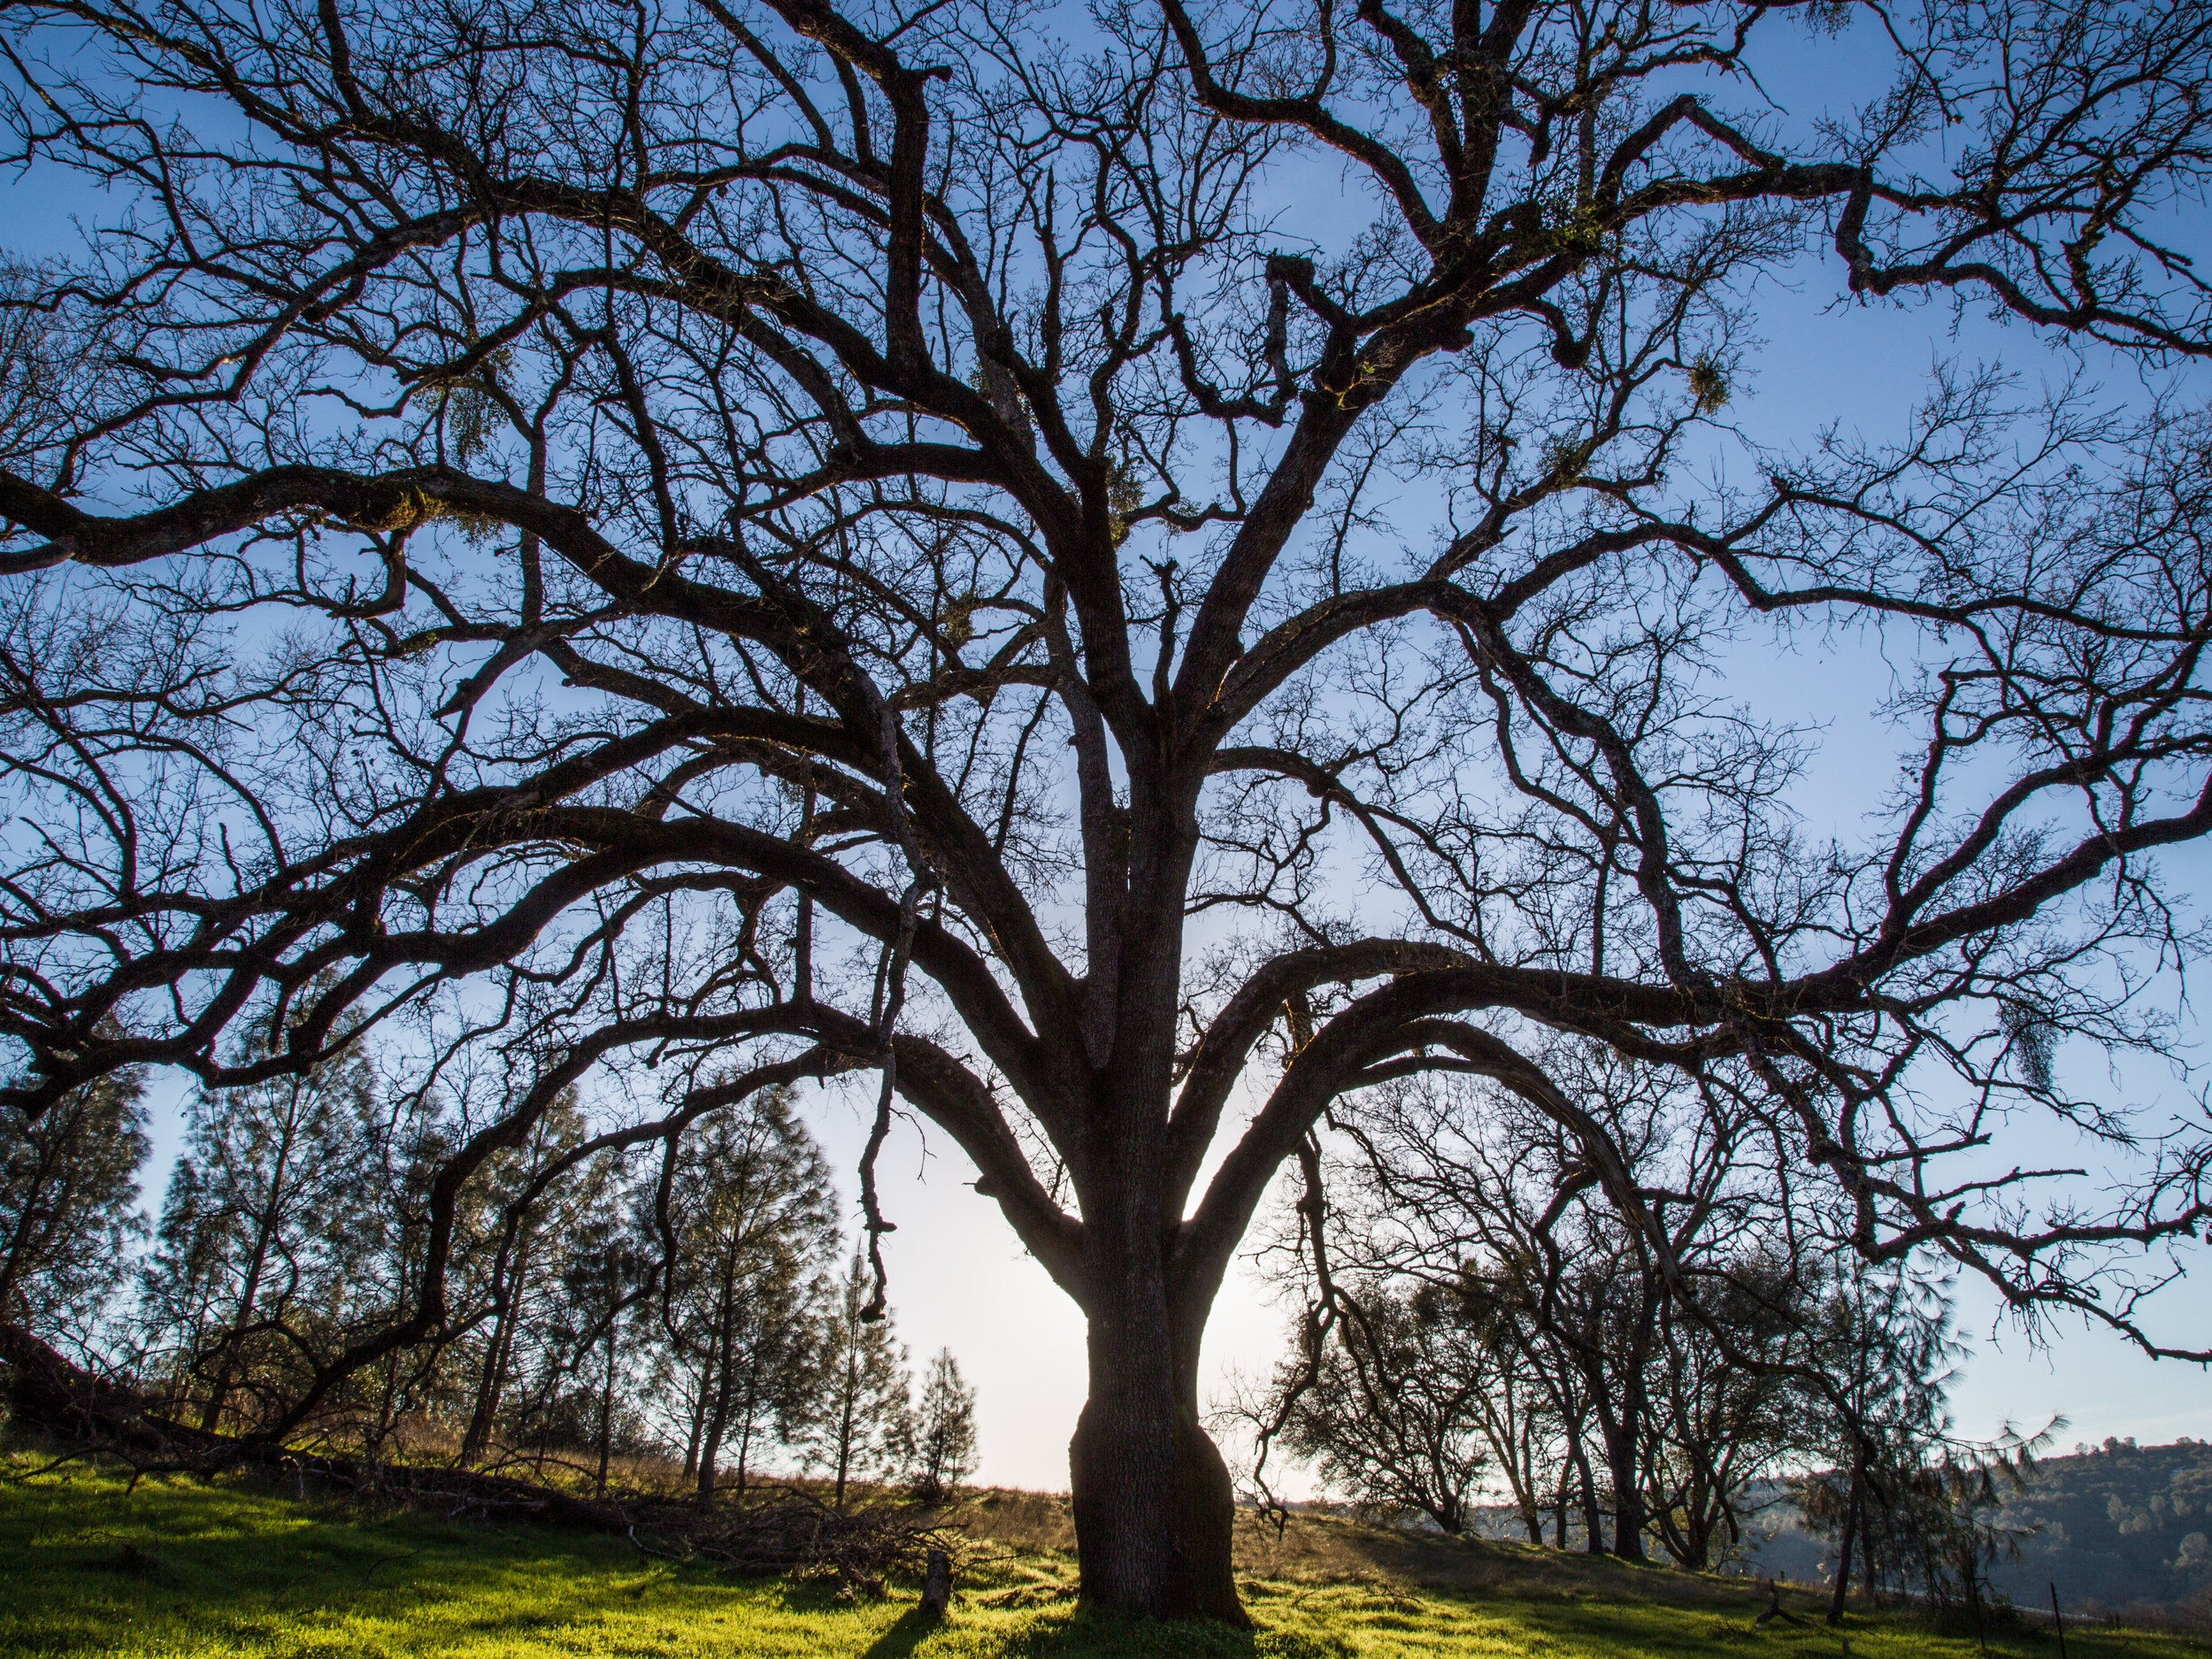 Solitary Oak Late Afternoon, Shingle Springs, CA